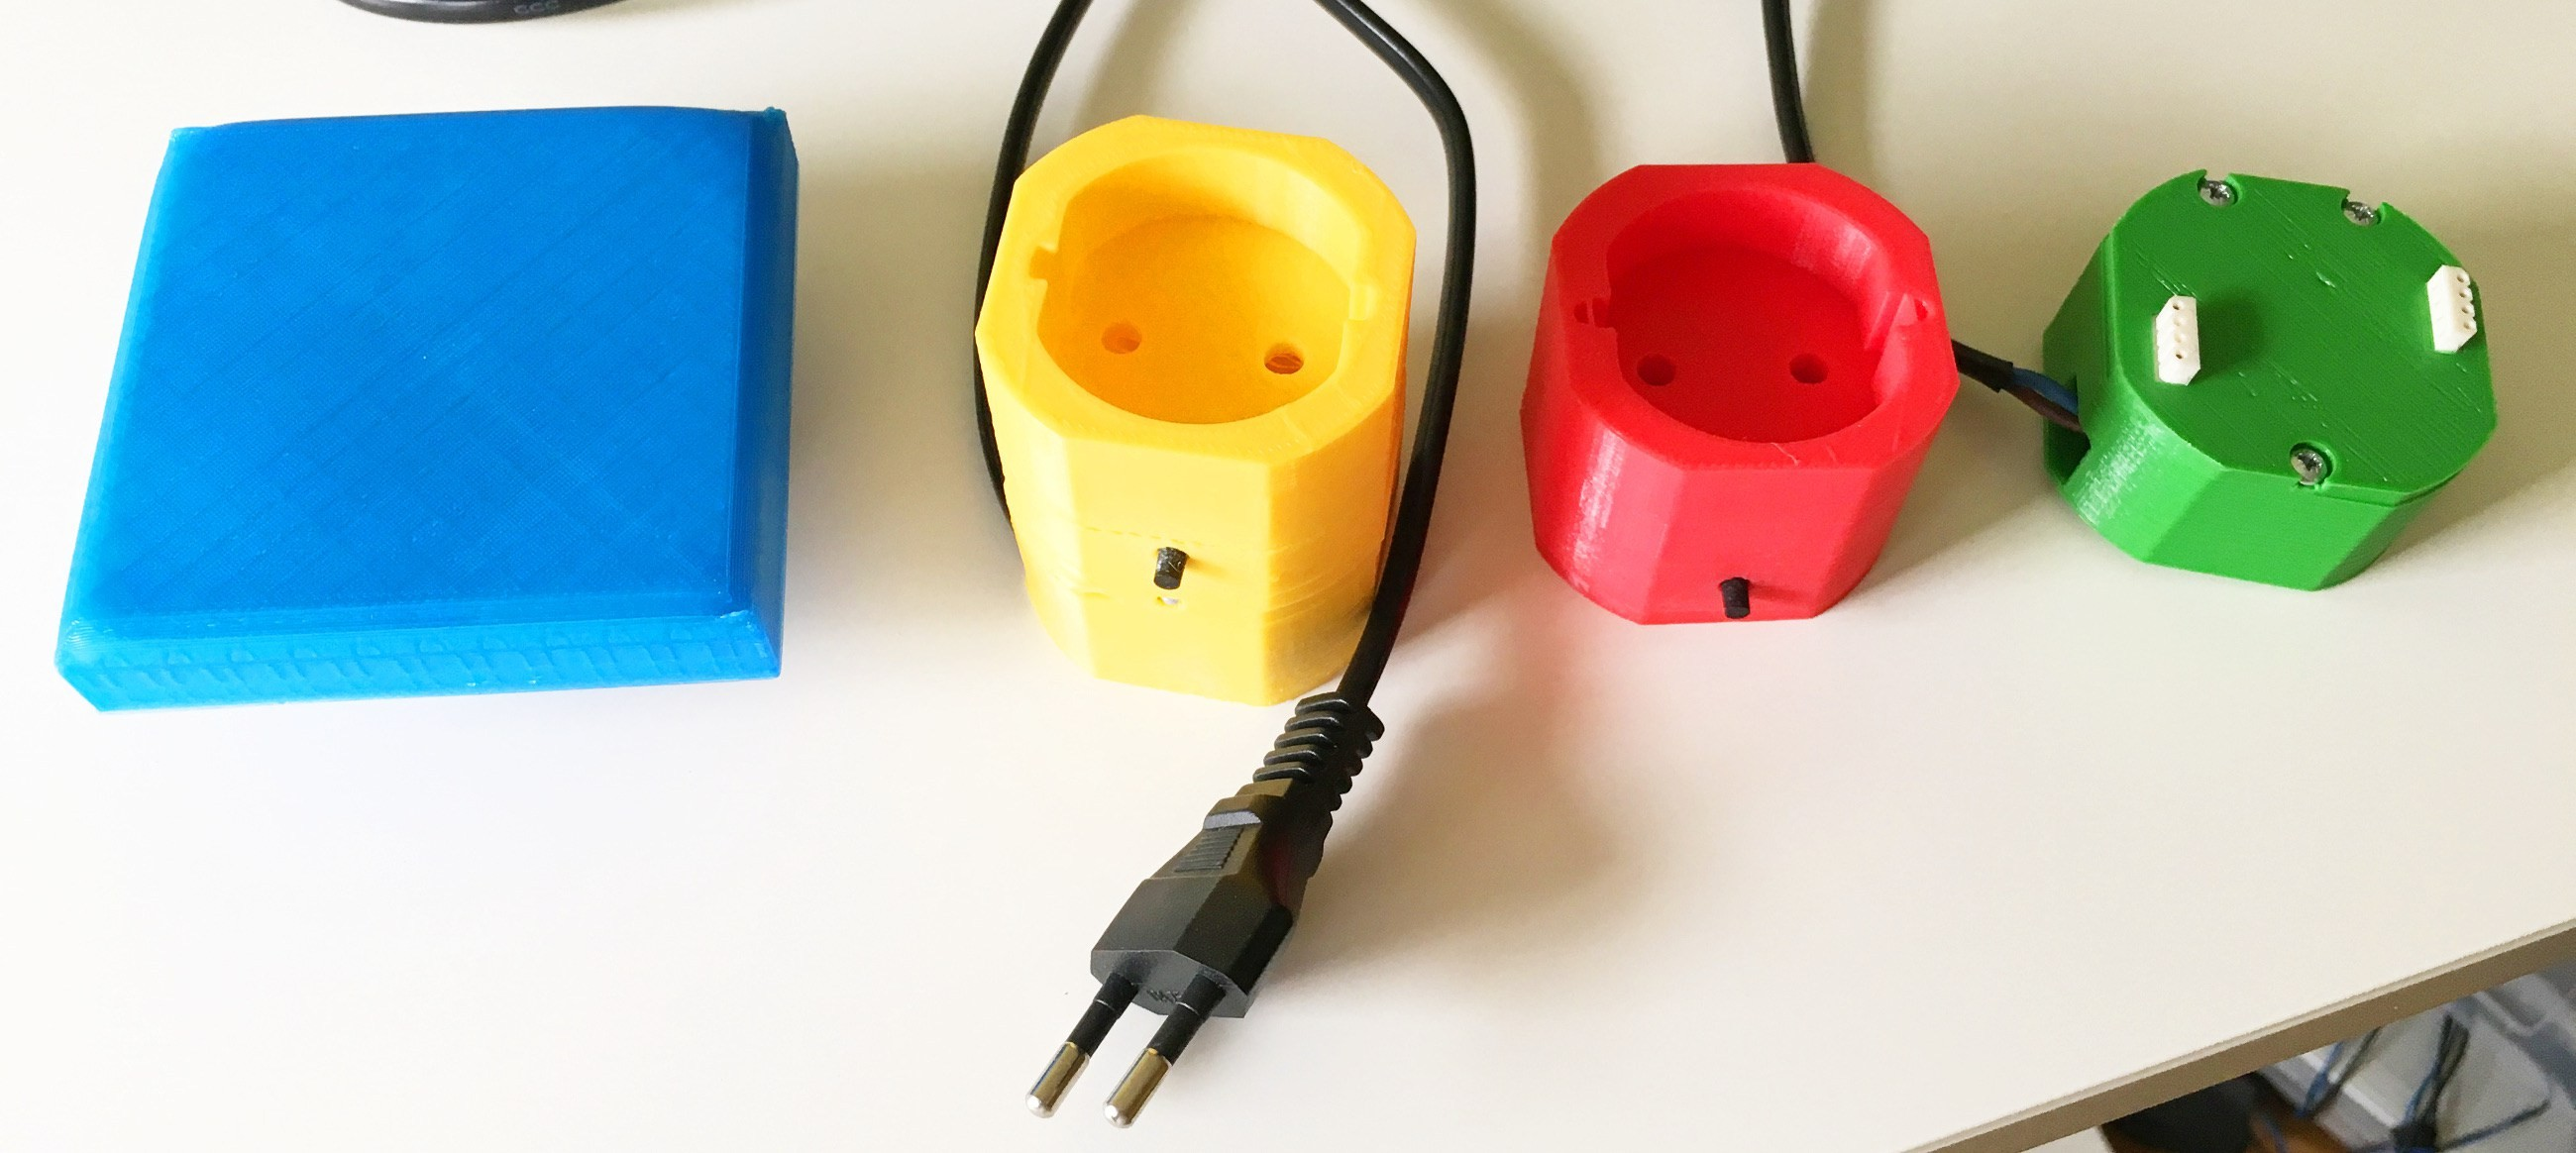 Wiring A touch Lamp Control An Esp8266 In Every Light Switch and Outlet Of Wiring A touch Lamp Control